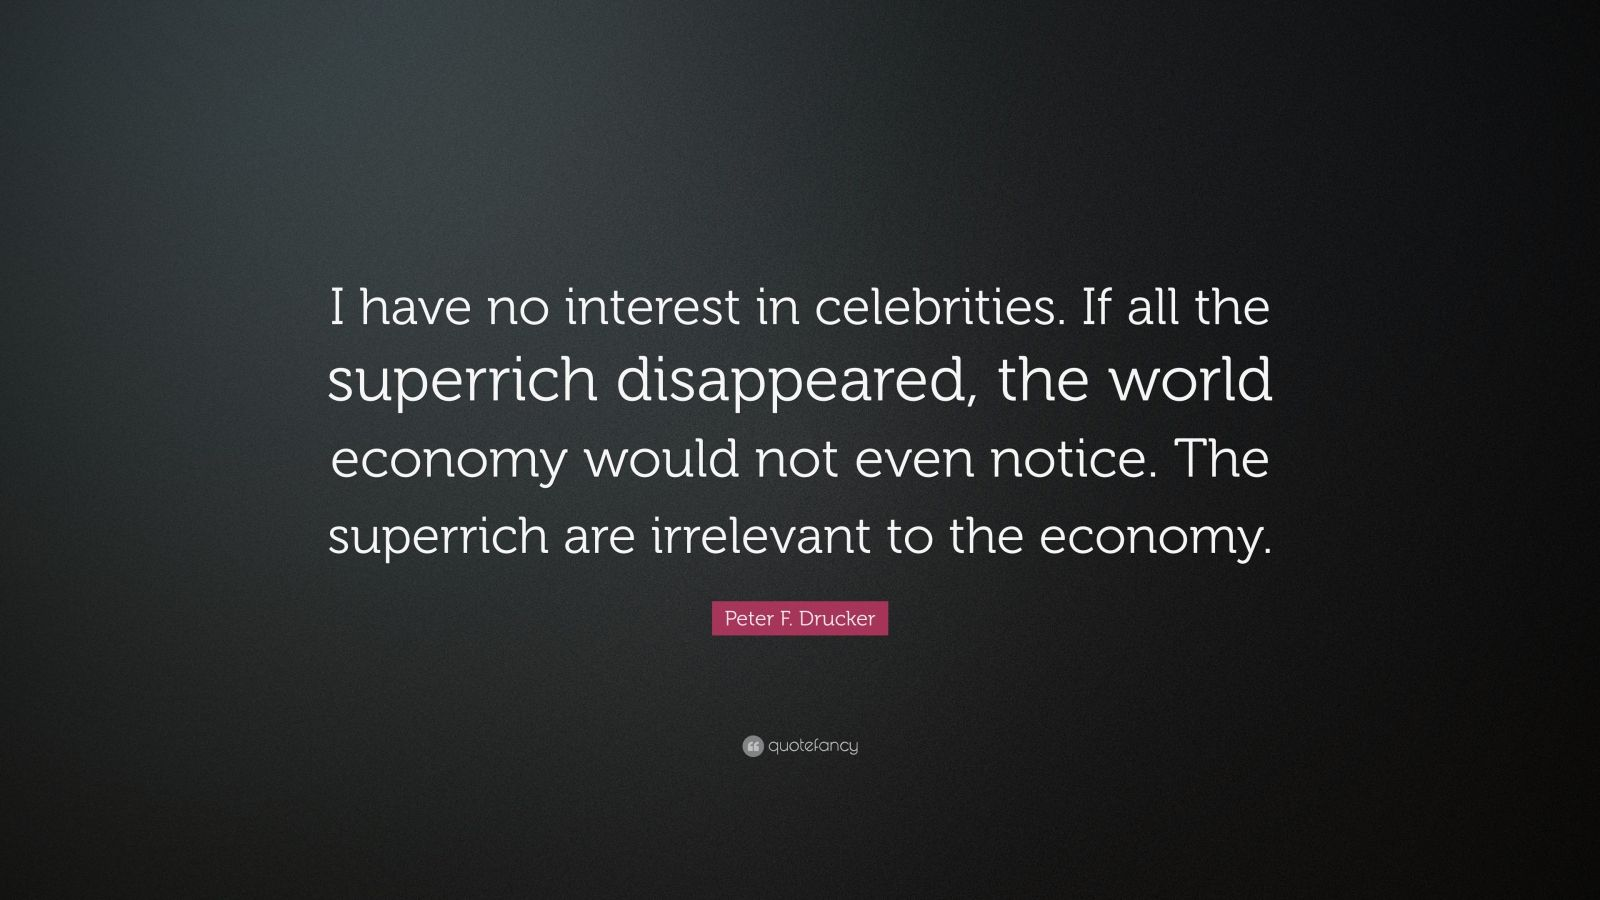 """Peter F. Drucker Quote: """"I have no interest in celebrities. If all the superrich disappeared, the world economy would not even notice. The superrich are irrelevant to the economy."""""""